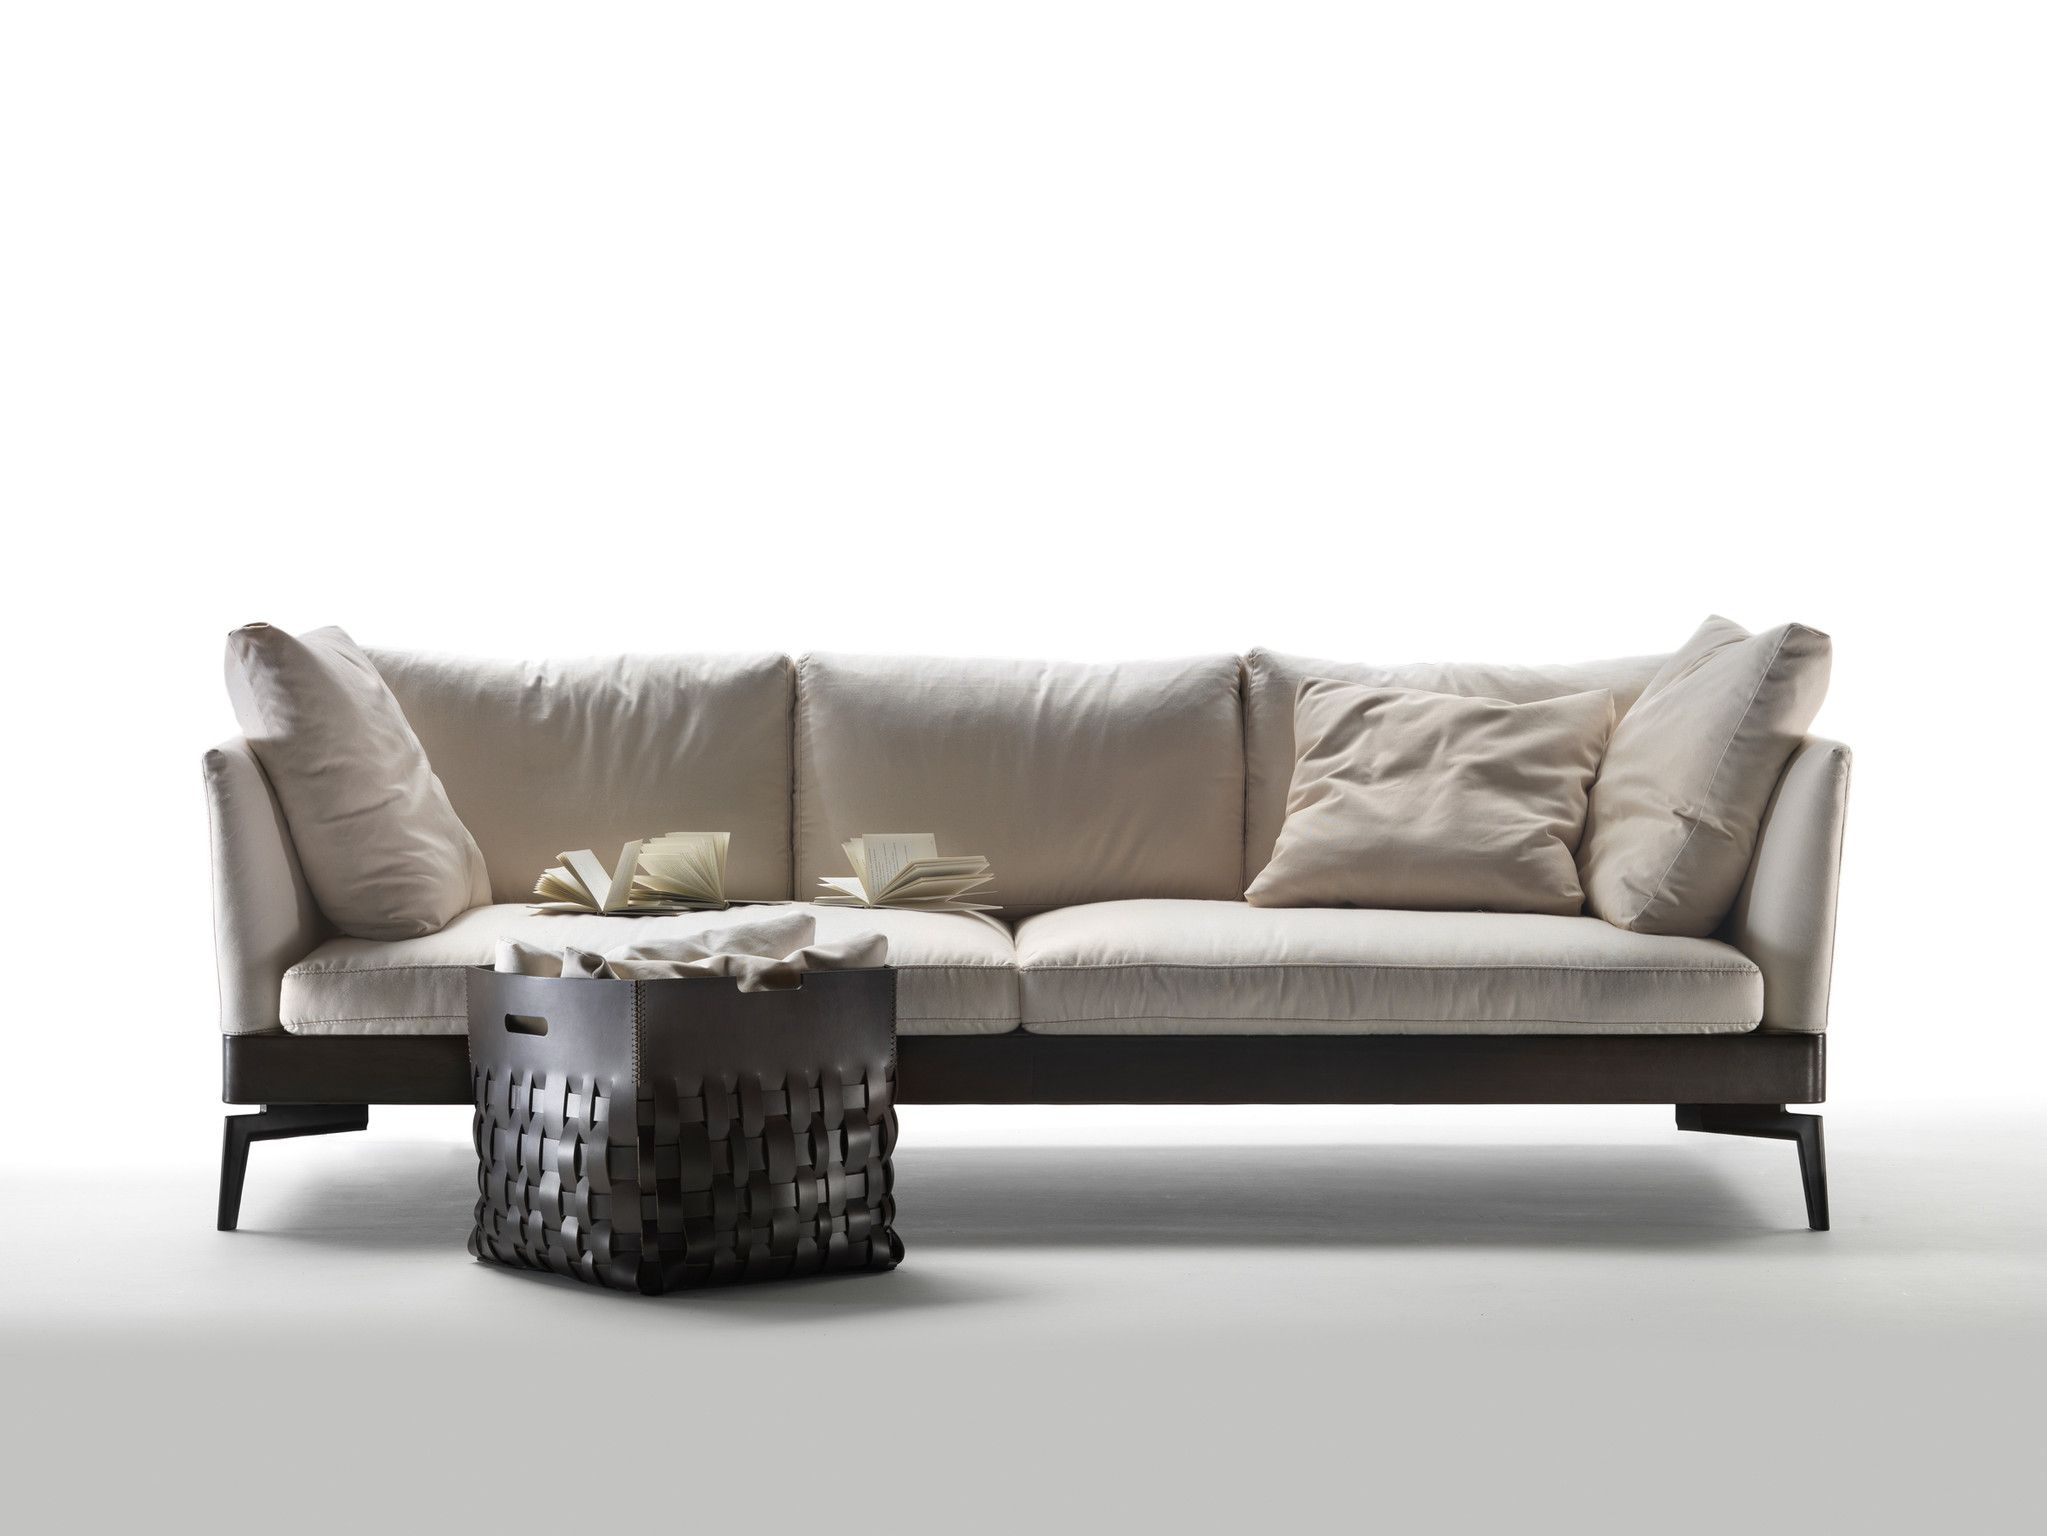 ETTORE 2016 Sofa with chaise longue Ettore 2016 Collection by